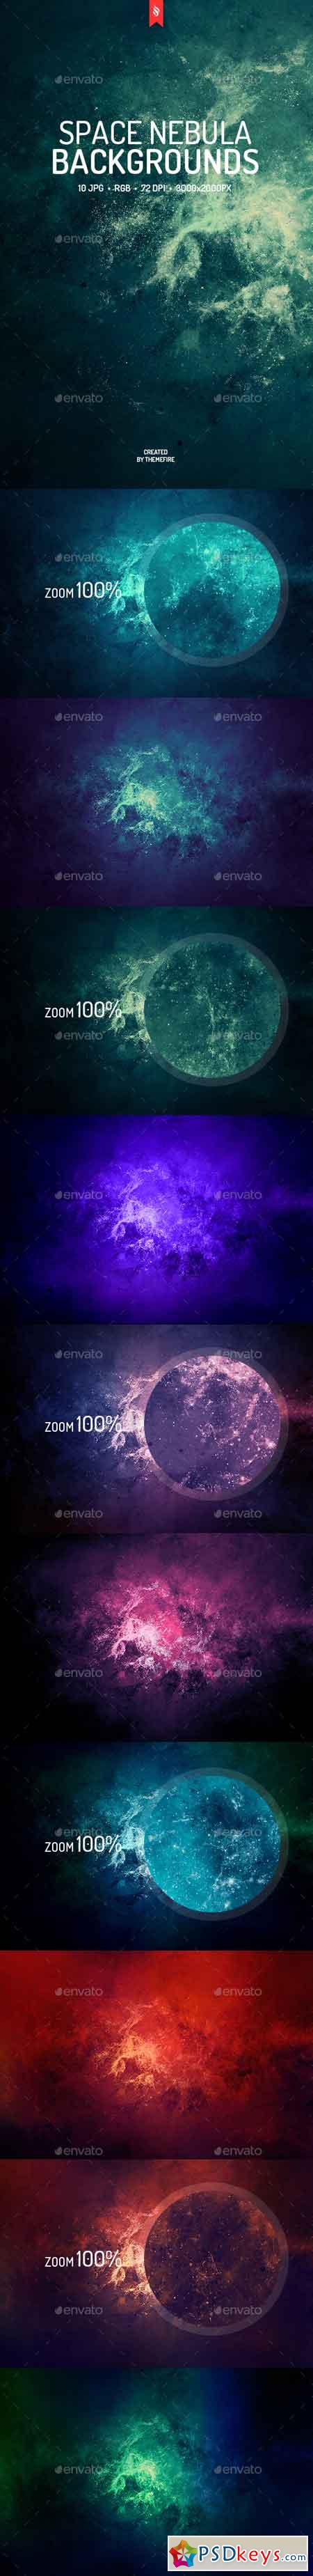 Space Nebula Backgrounds 19330736